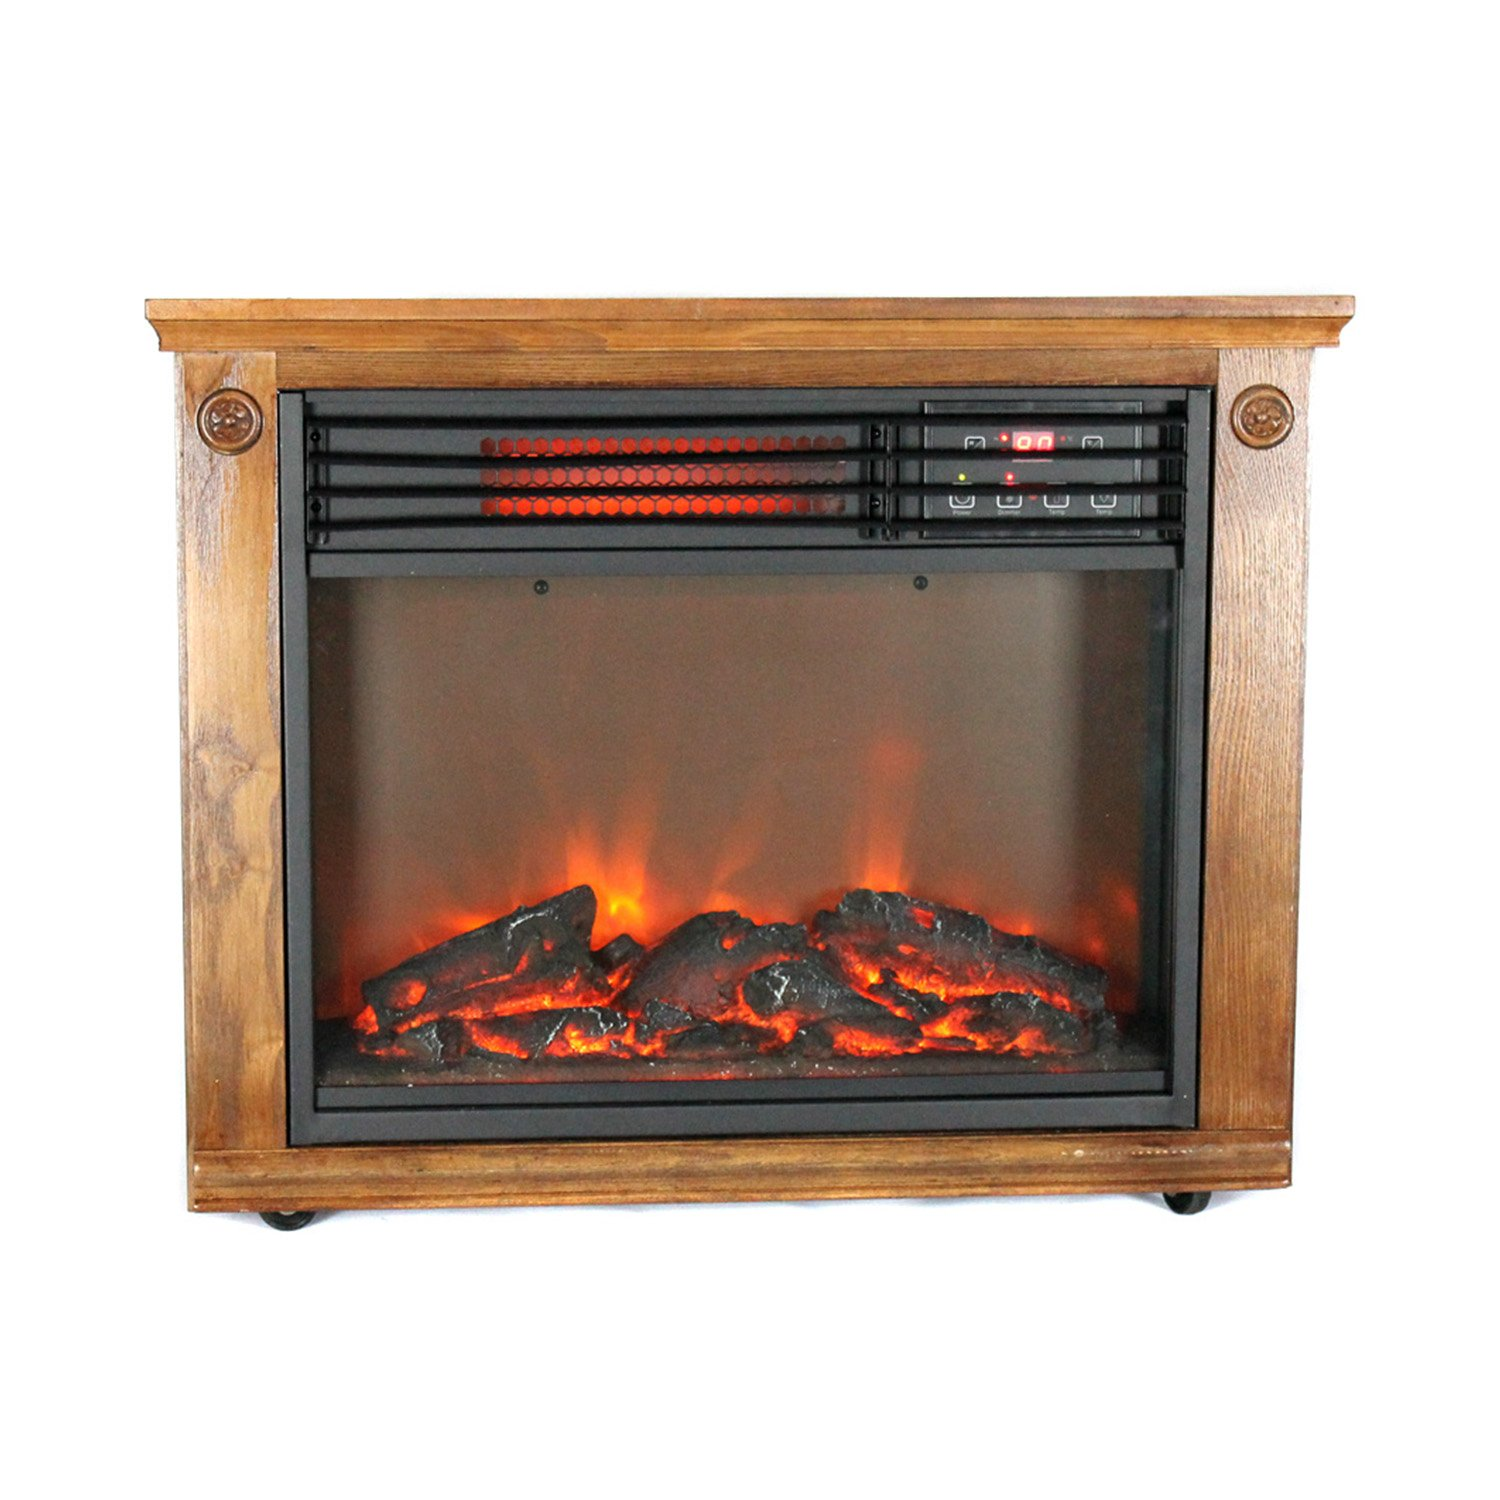 3 Element Electric Quartz Infrared Fireplace Heater